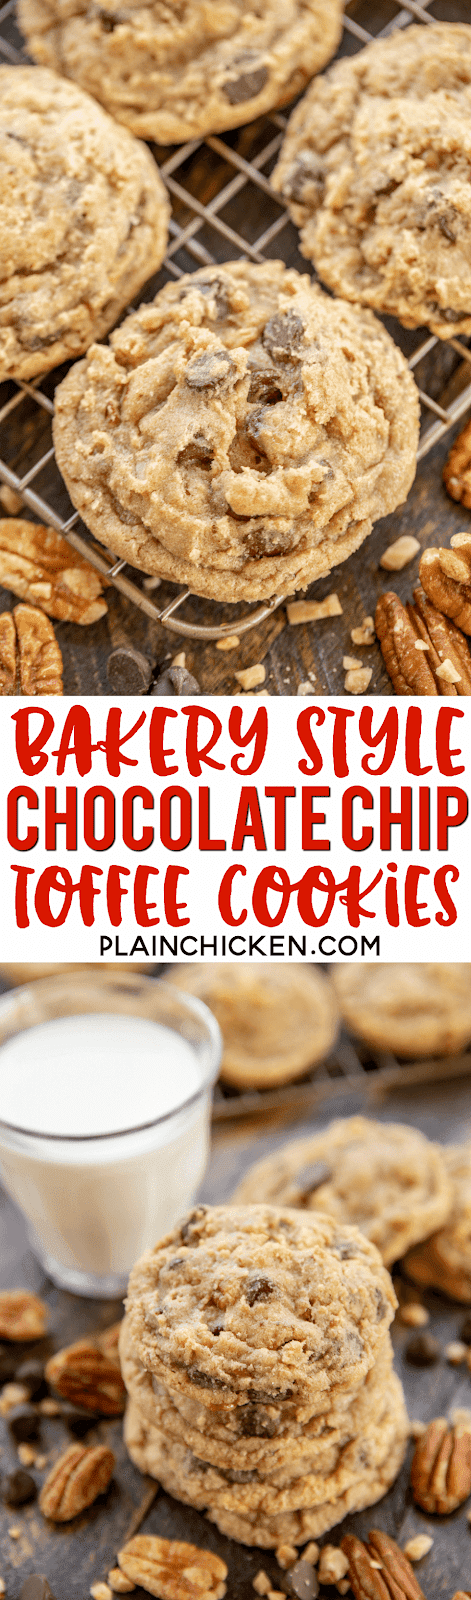 Bakery Style Chocolate Chip Toffee Cookies - crispy on the outside and chewy on the inside. Perfection!! All you need is a glass of milk! Butter, brown sugar, eggs, vanilla, baking soda, flour, chocolate chips, toffee bits and pecans. Cookies are best when dough is chilled for a couple of hours before baking. These are better than any bakery cookie! We could not stop eating them! SO good!! #cookies #chocolatechip #cookie #dessert